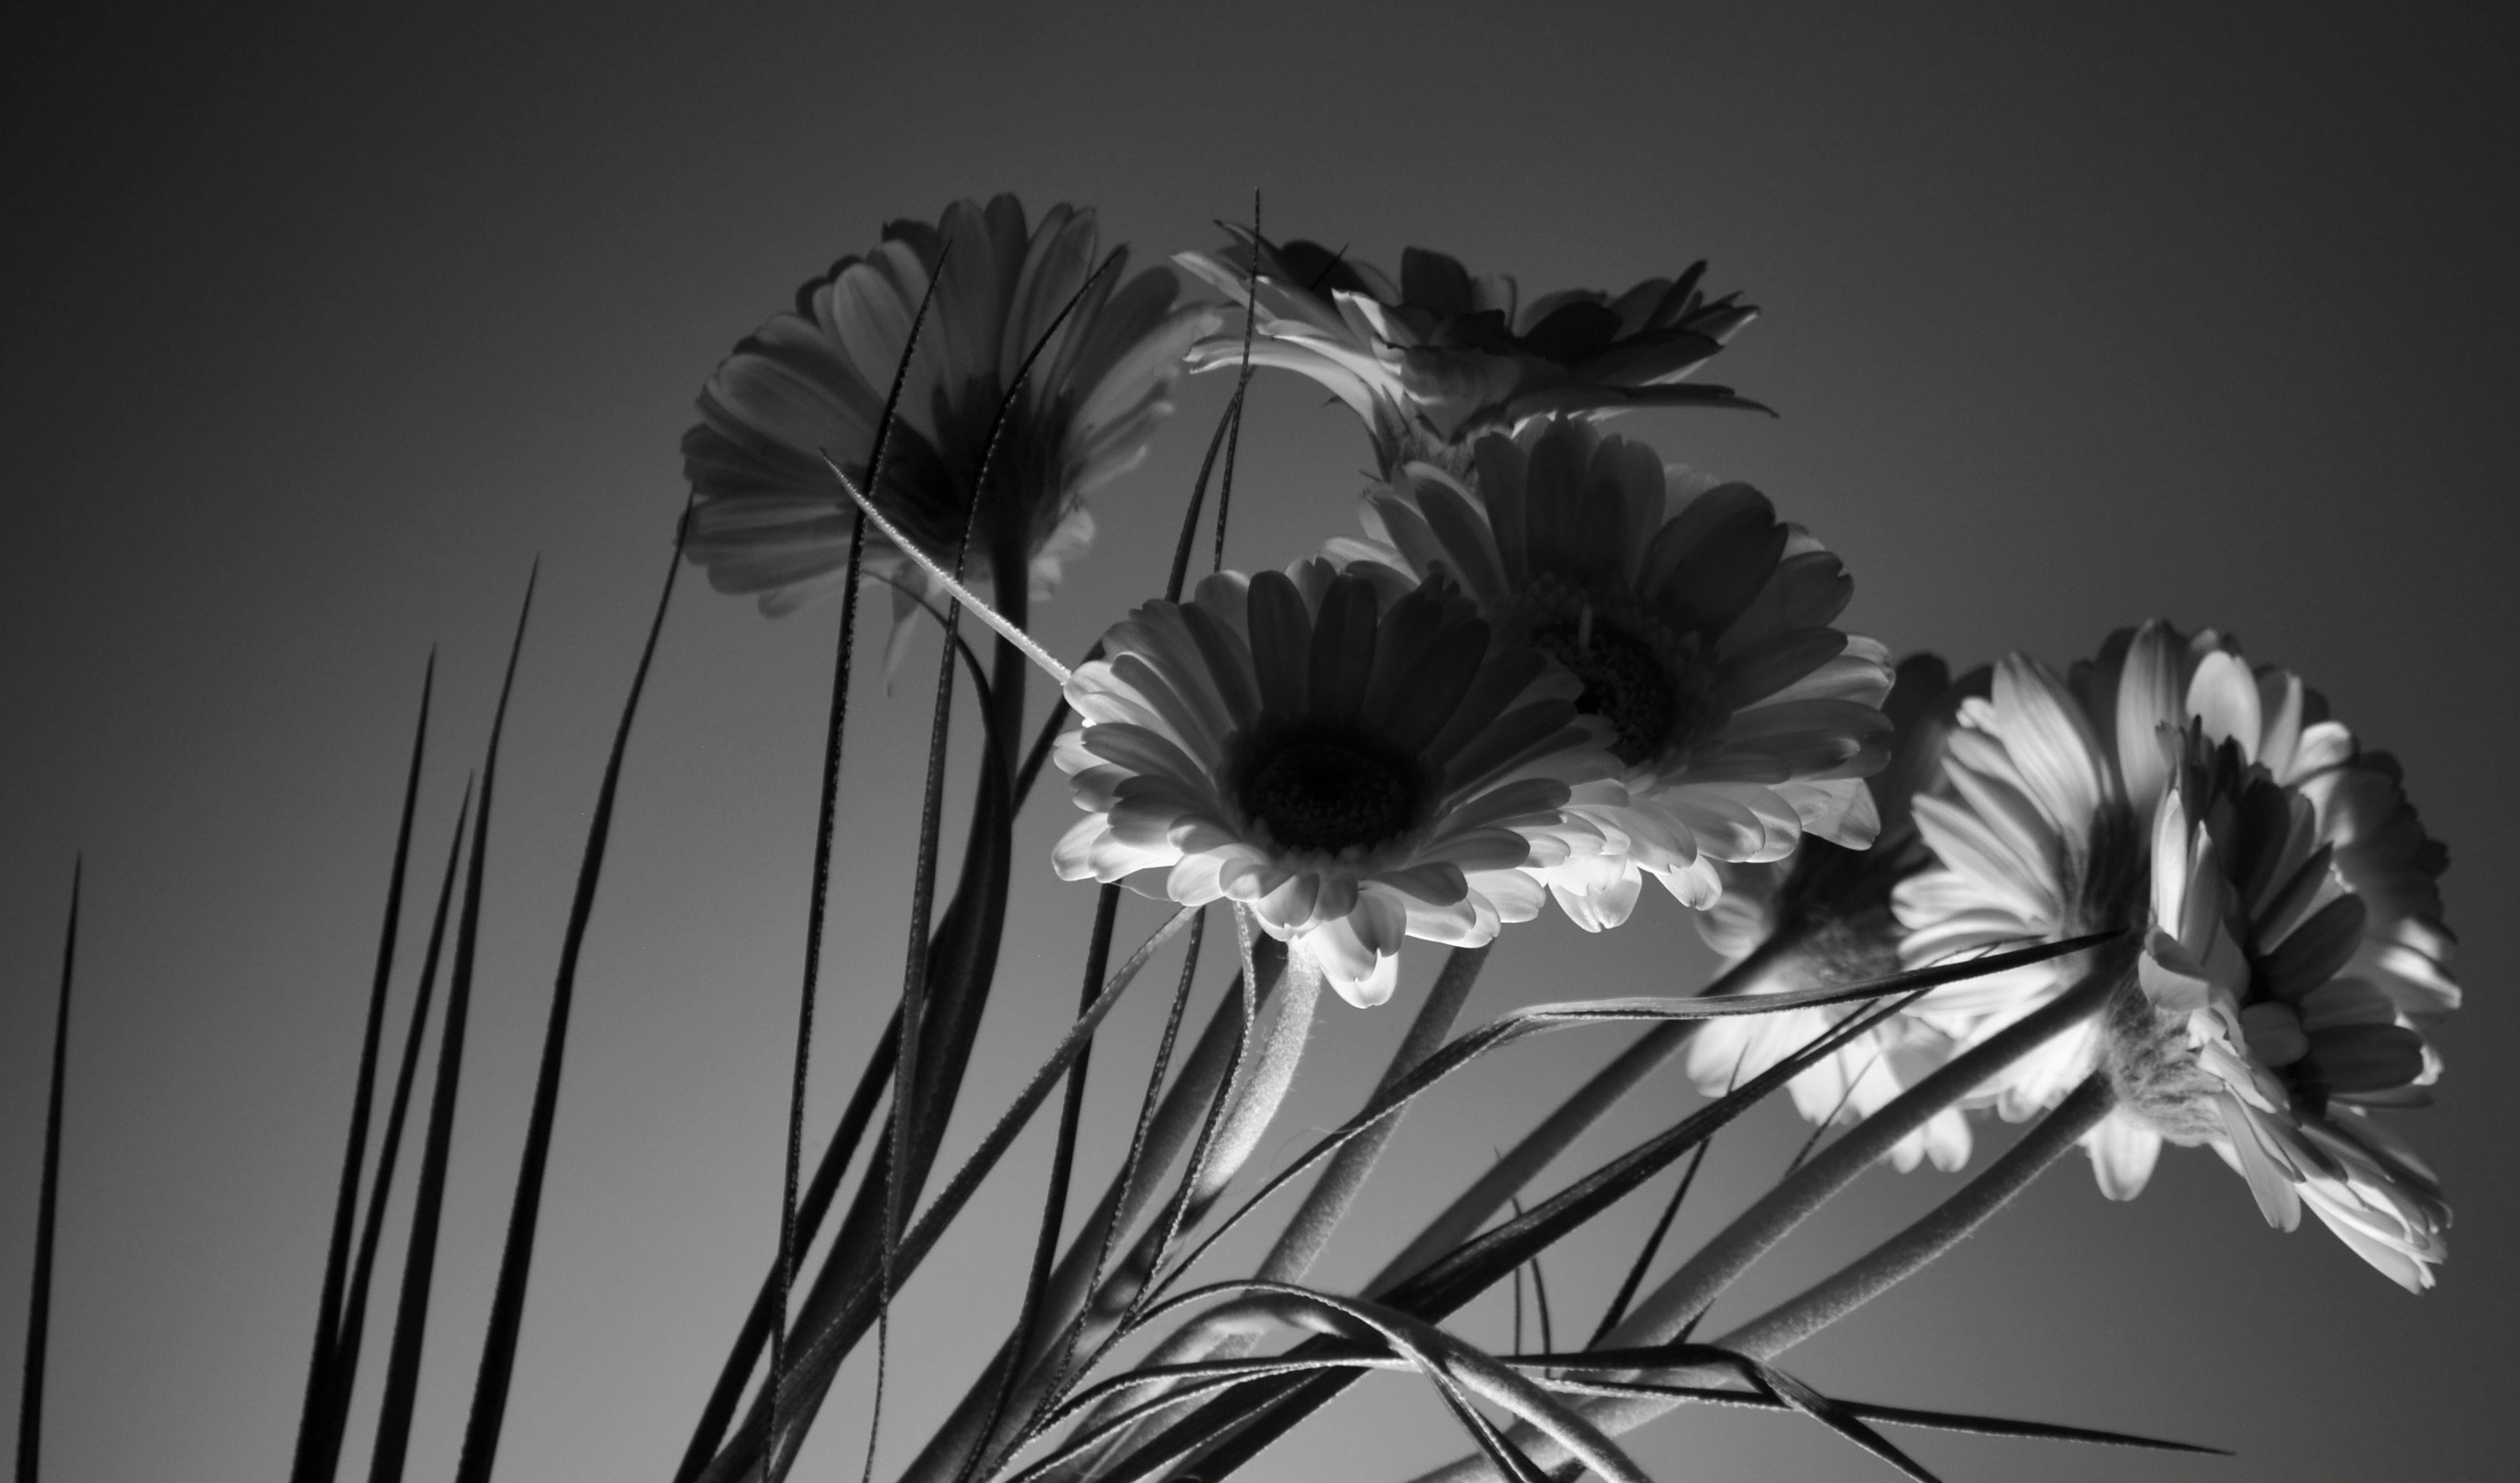 Grayscale Photography Of Rose Free Stock Photo